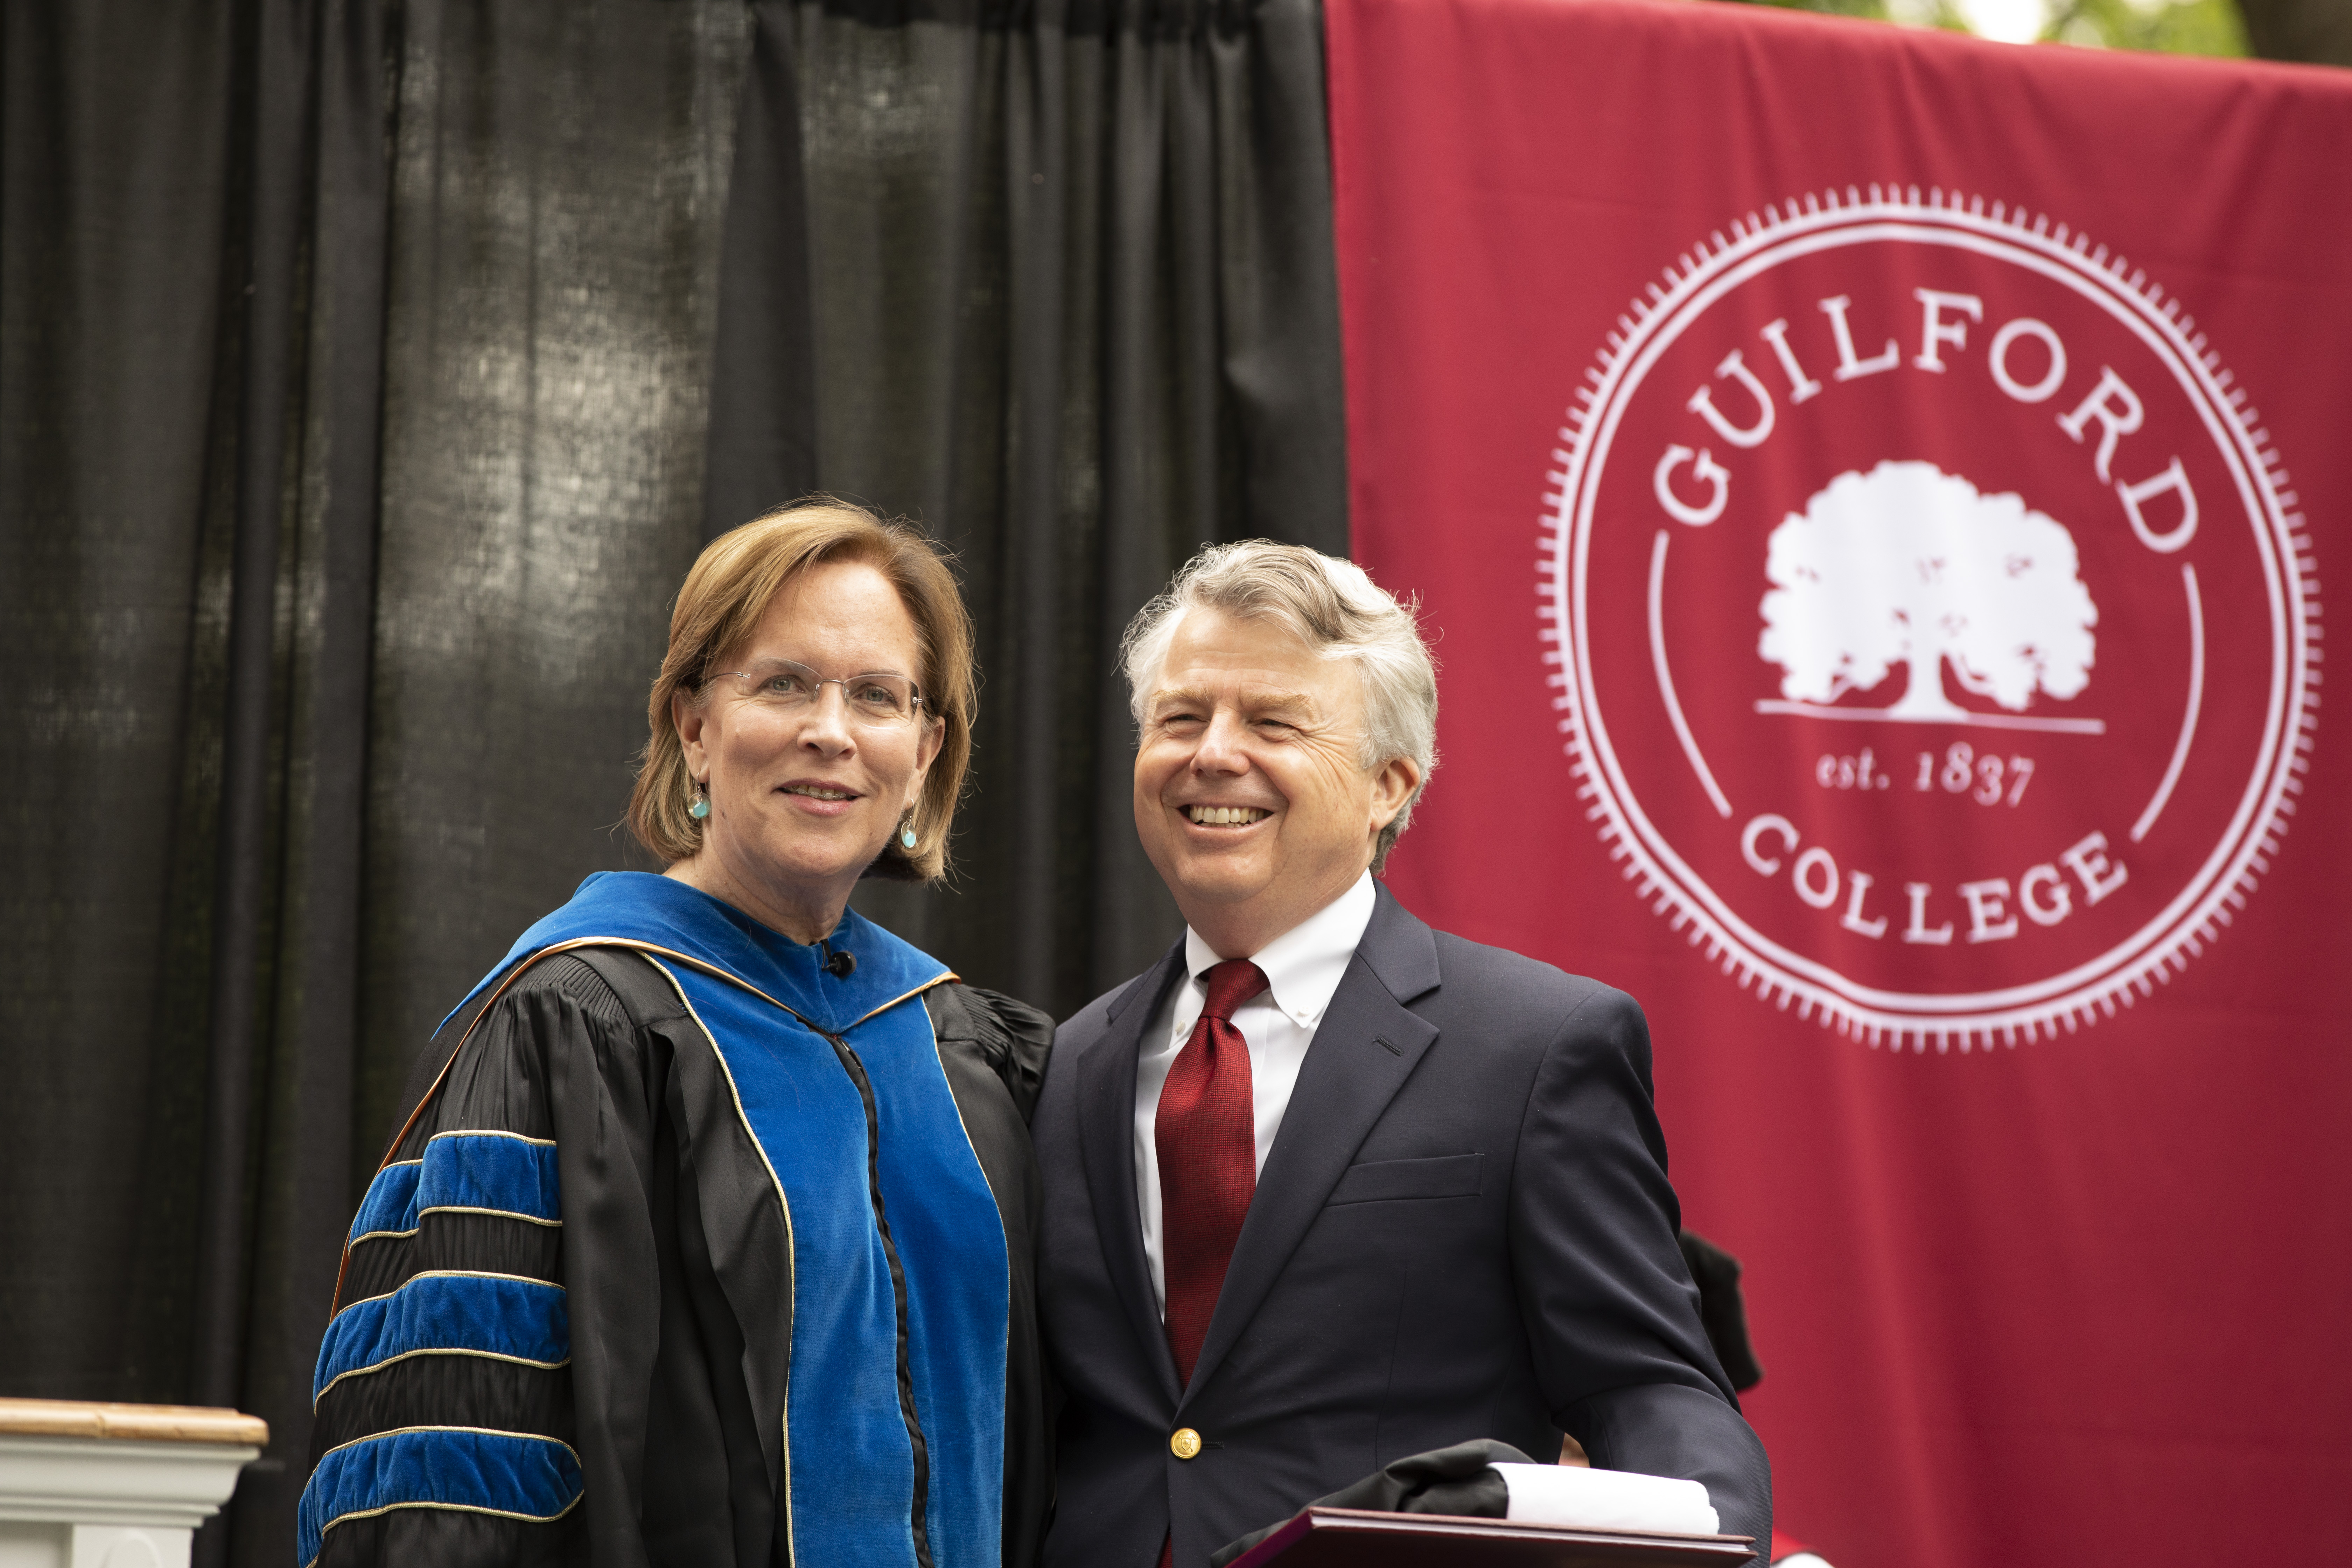 President Jane K. Fernandes (left) and Commencement speaker Dennis Quaintance of Quaintance-Weaver Restaurants and Hotels